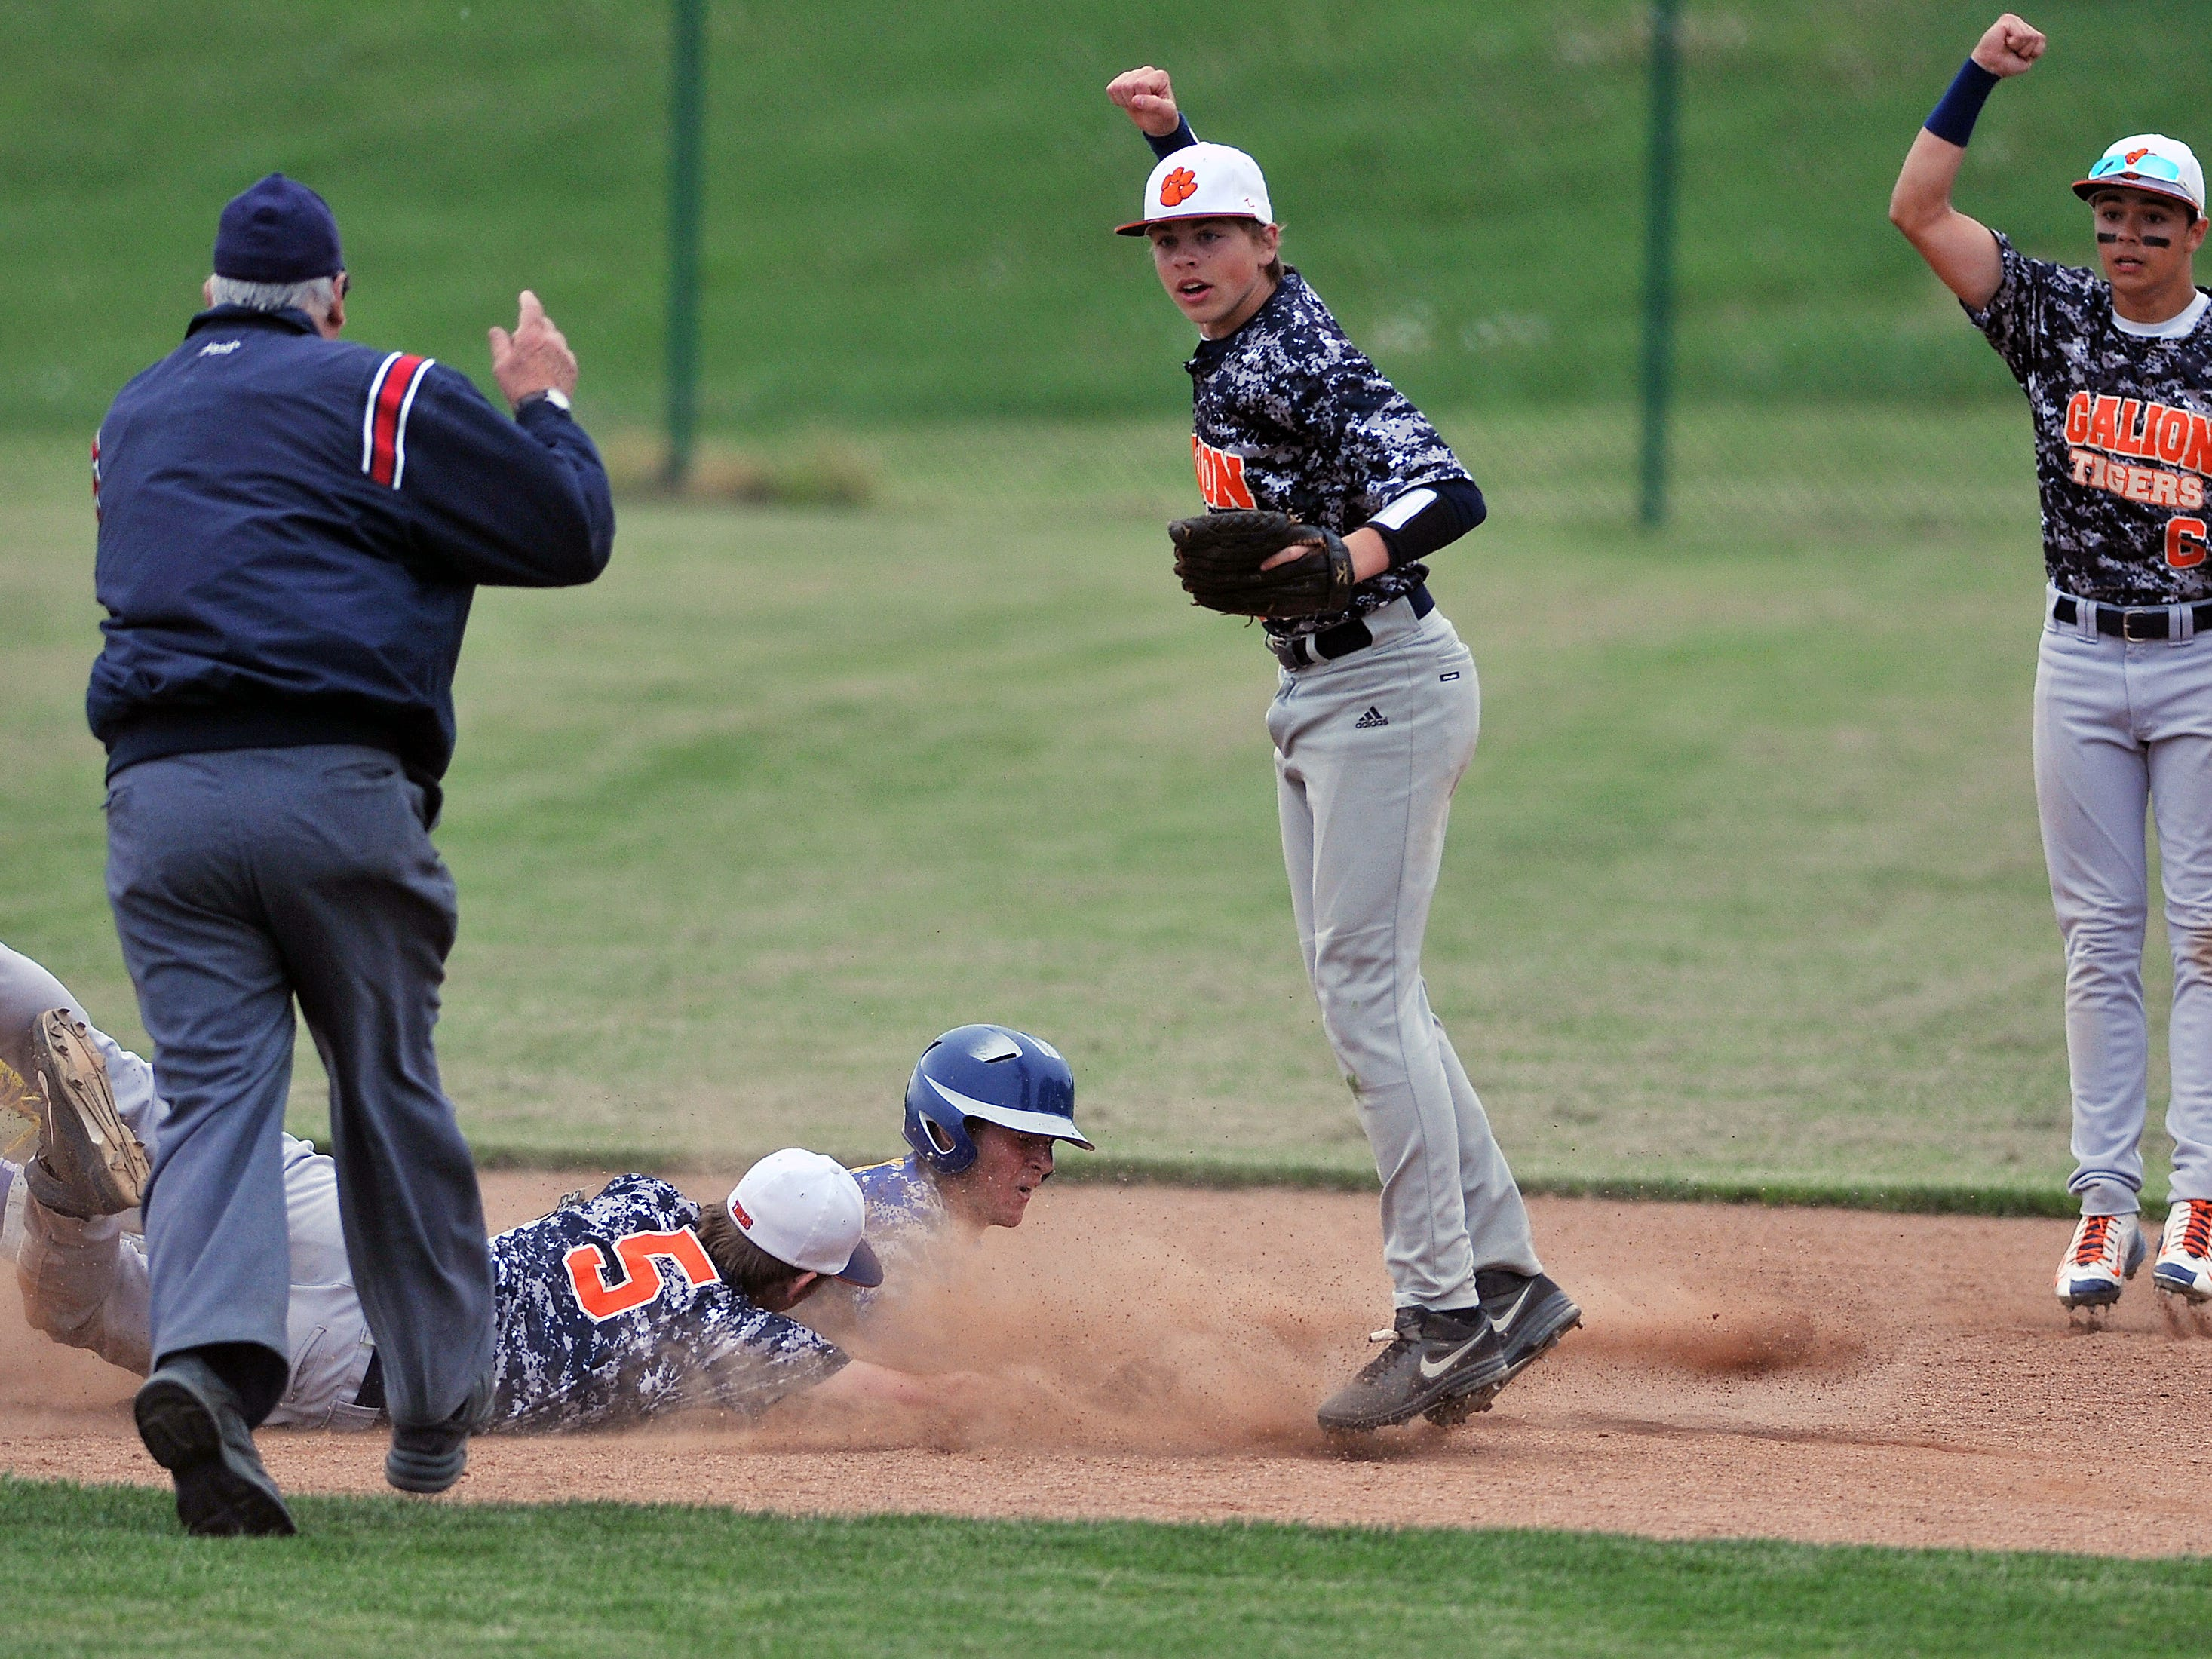 Galion players look for the call from the umpire after a rundown during the Division II sectional title baseball game against Ontario Thursday.